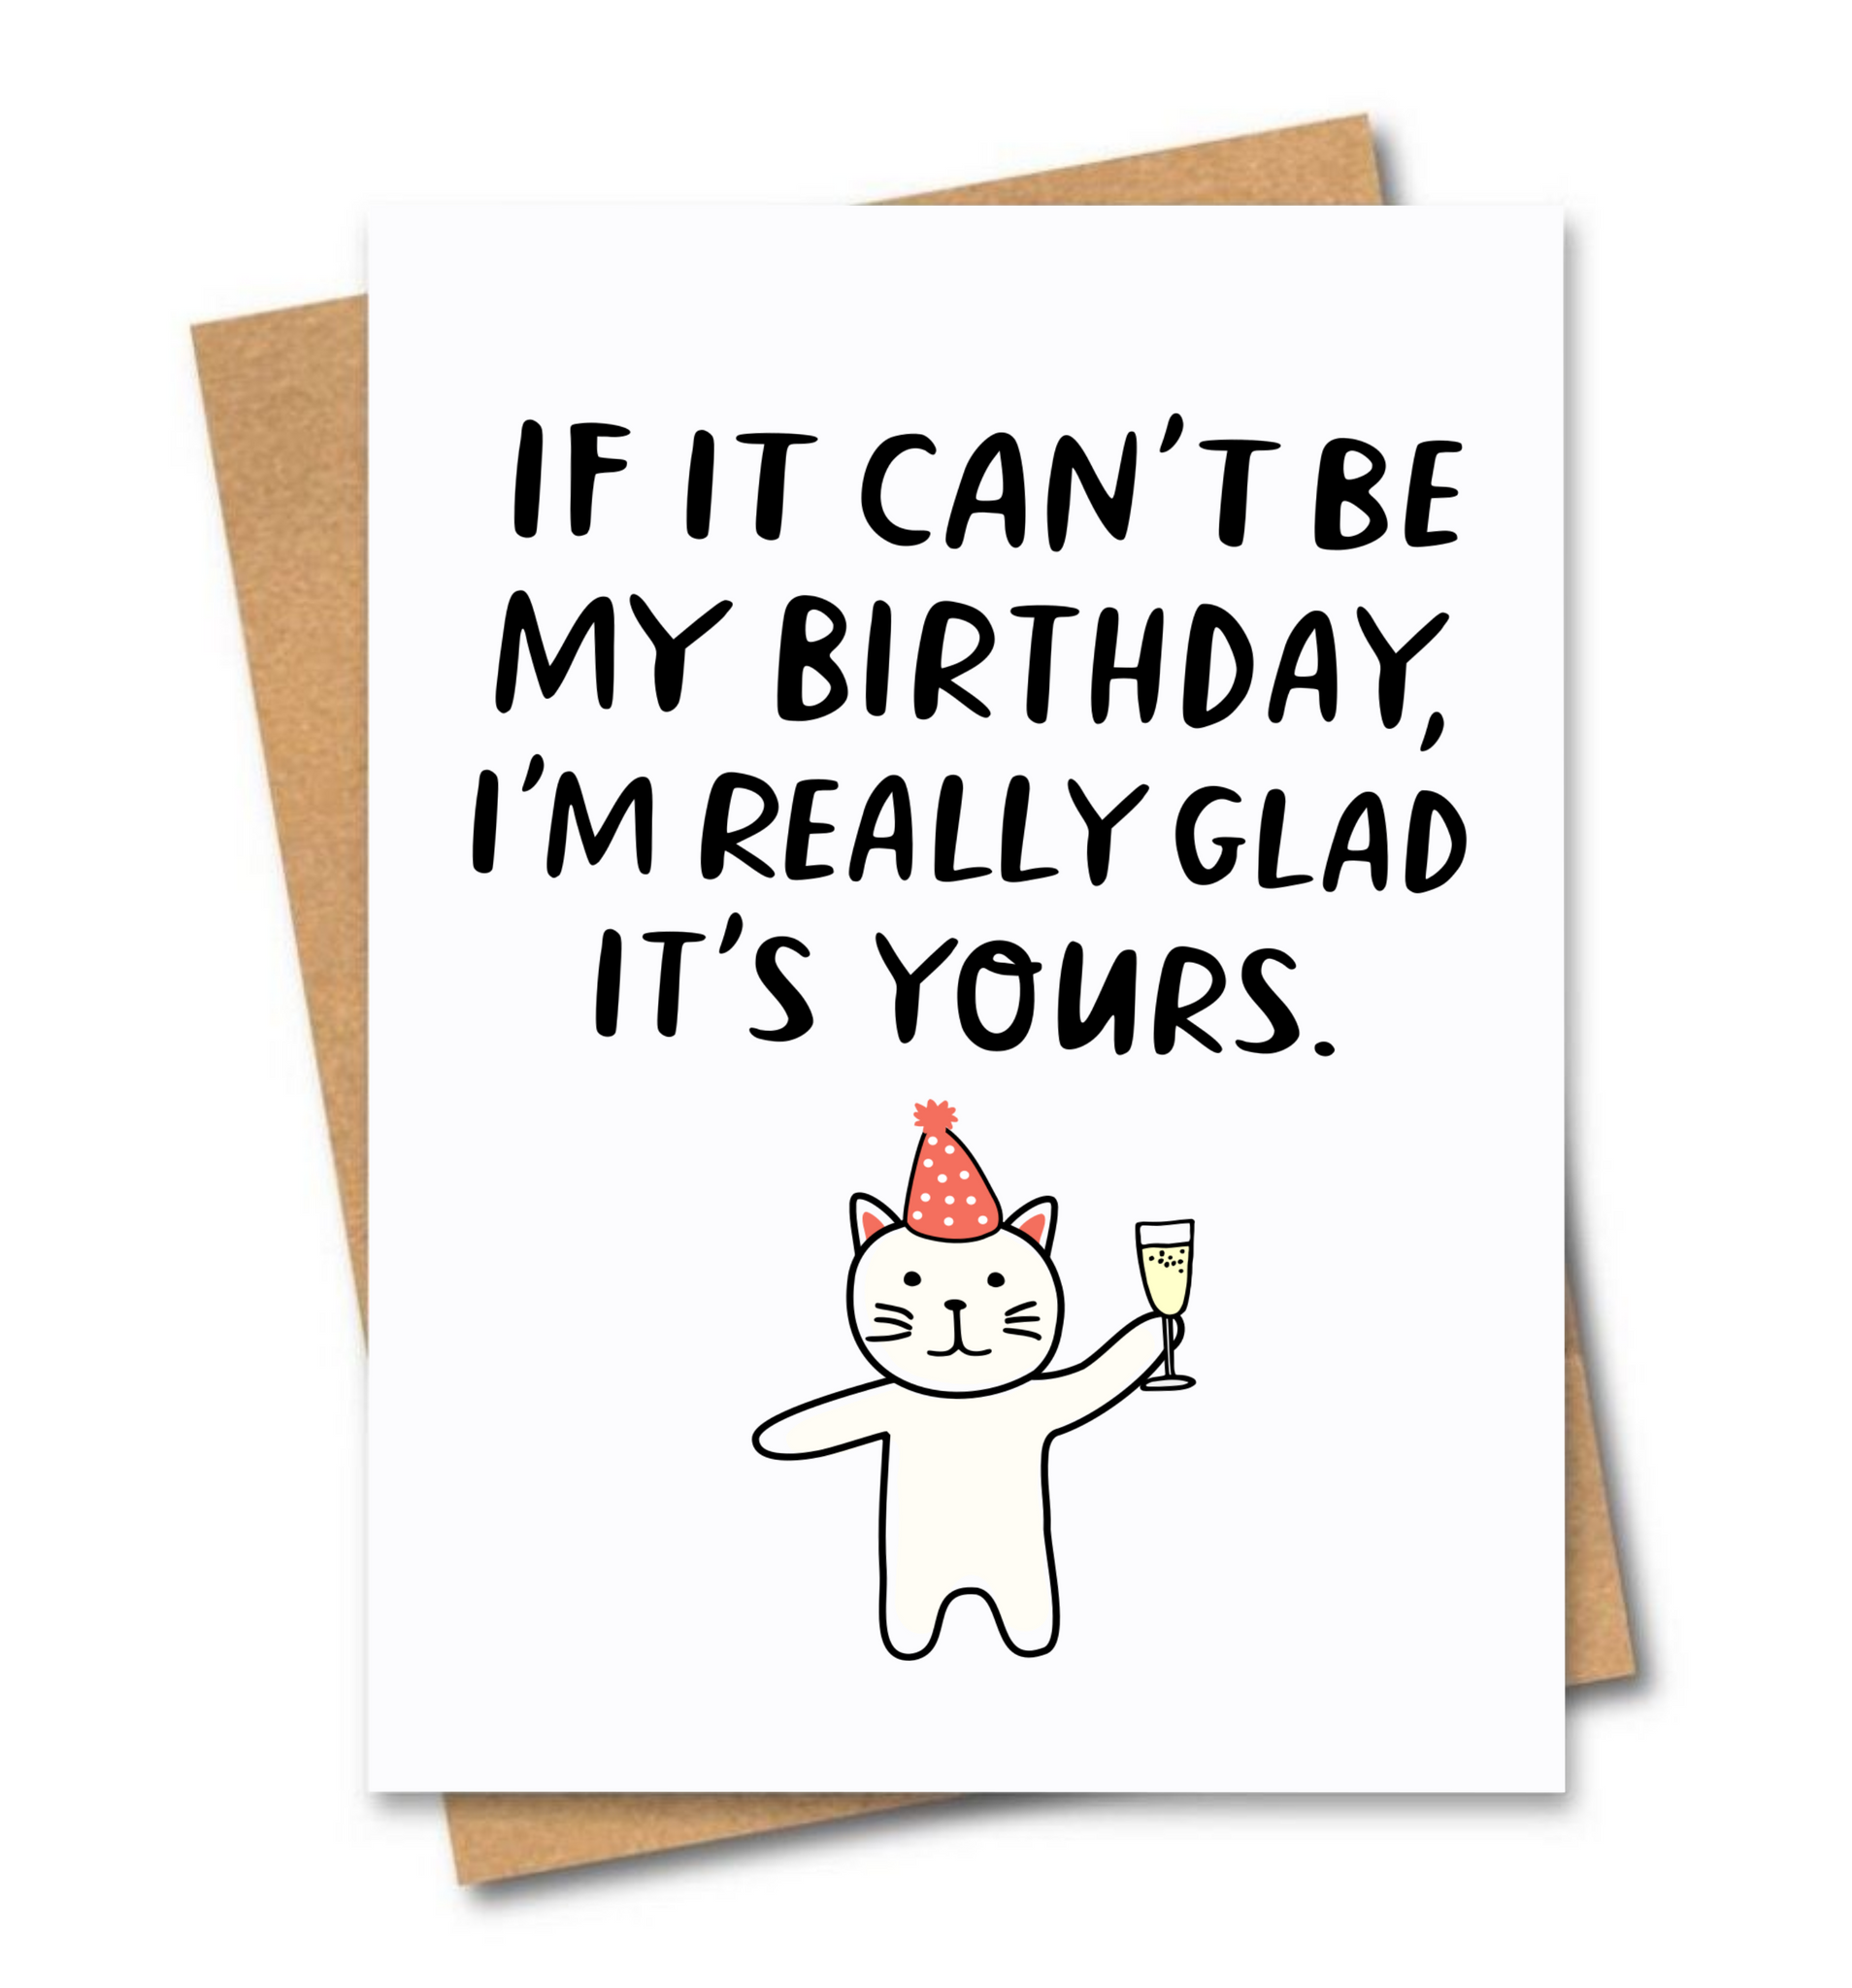 If It Can't Be My Birthday